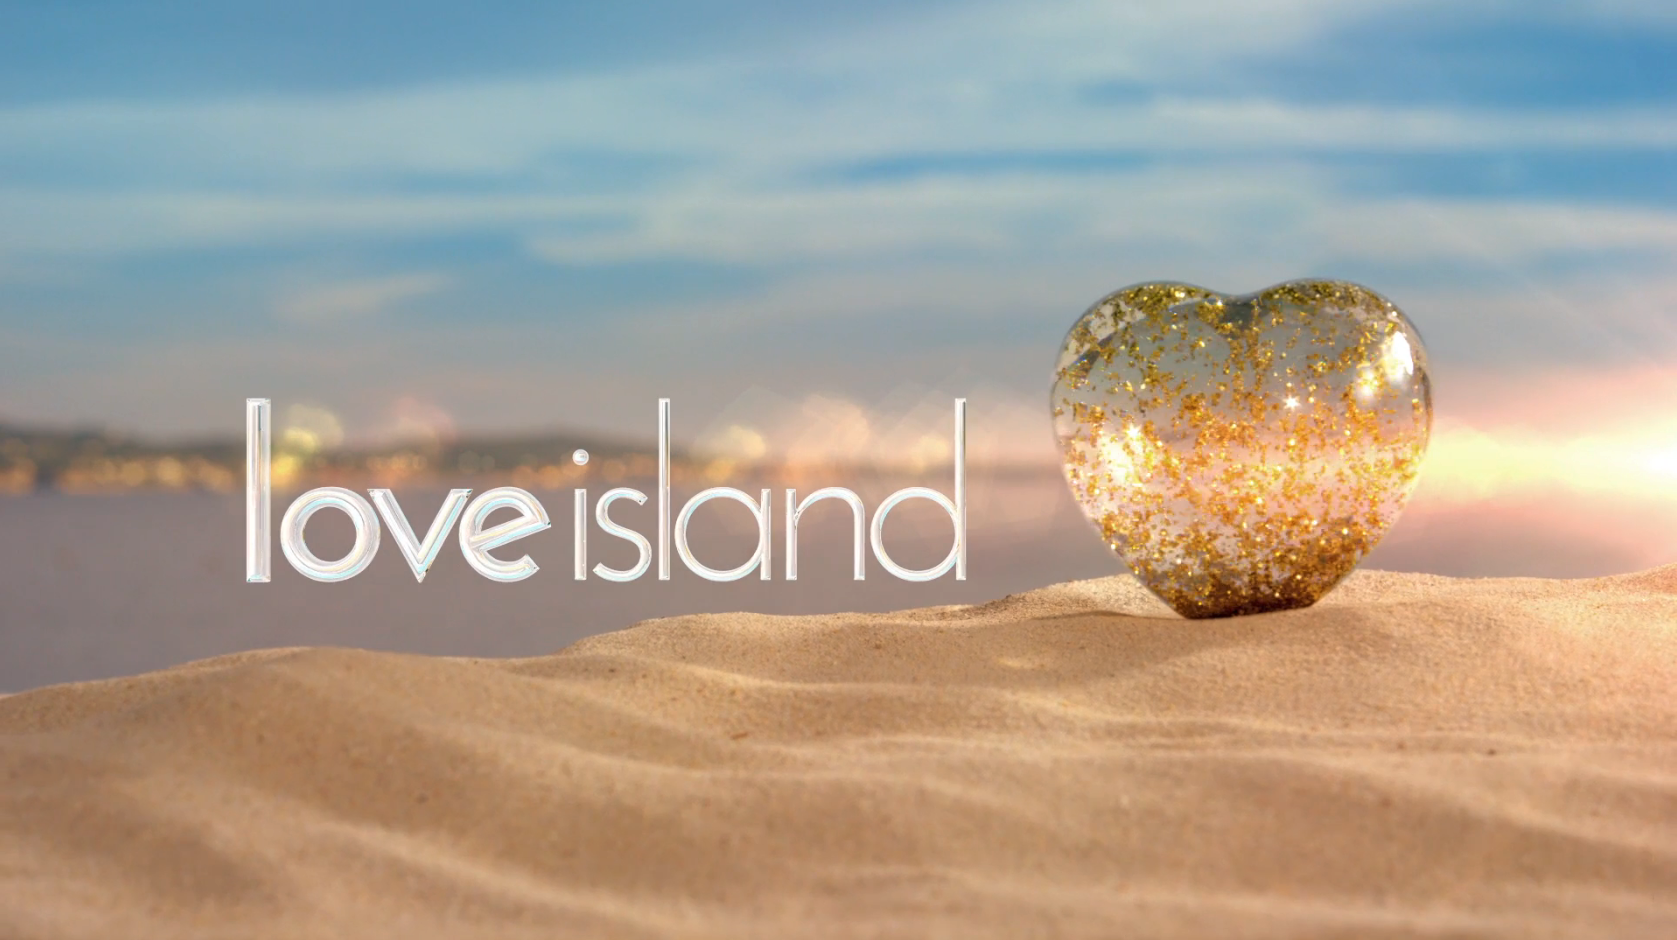 Love Island 2015 - Potion Pictures